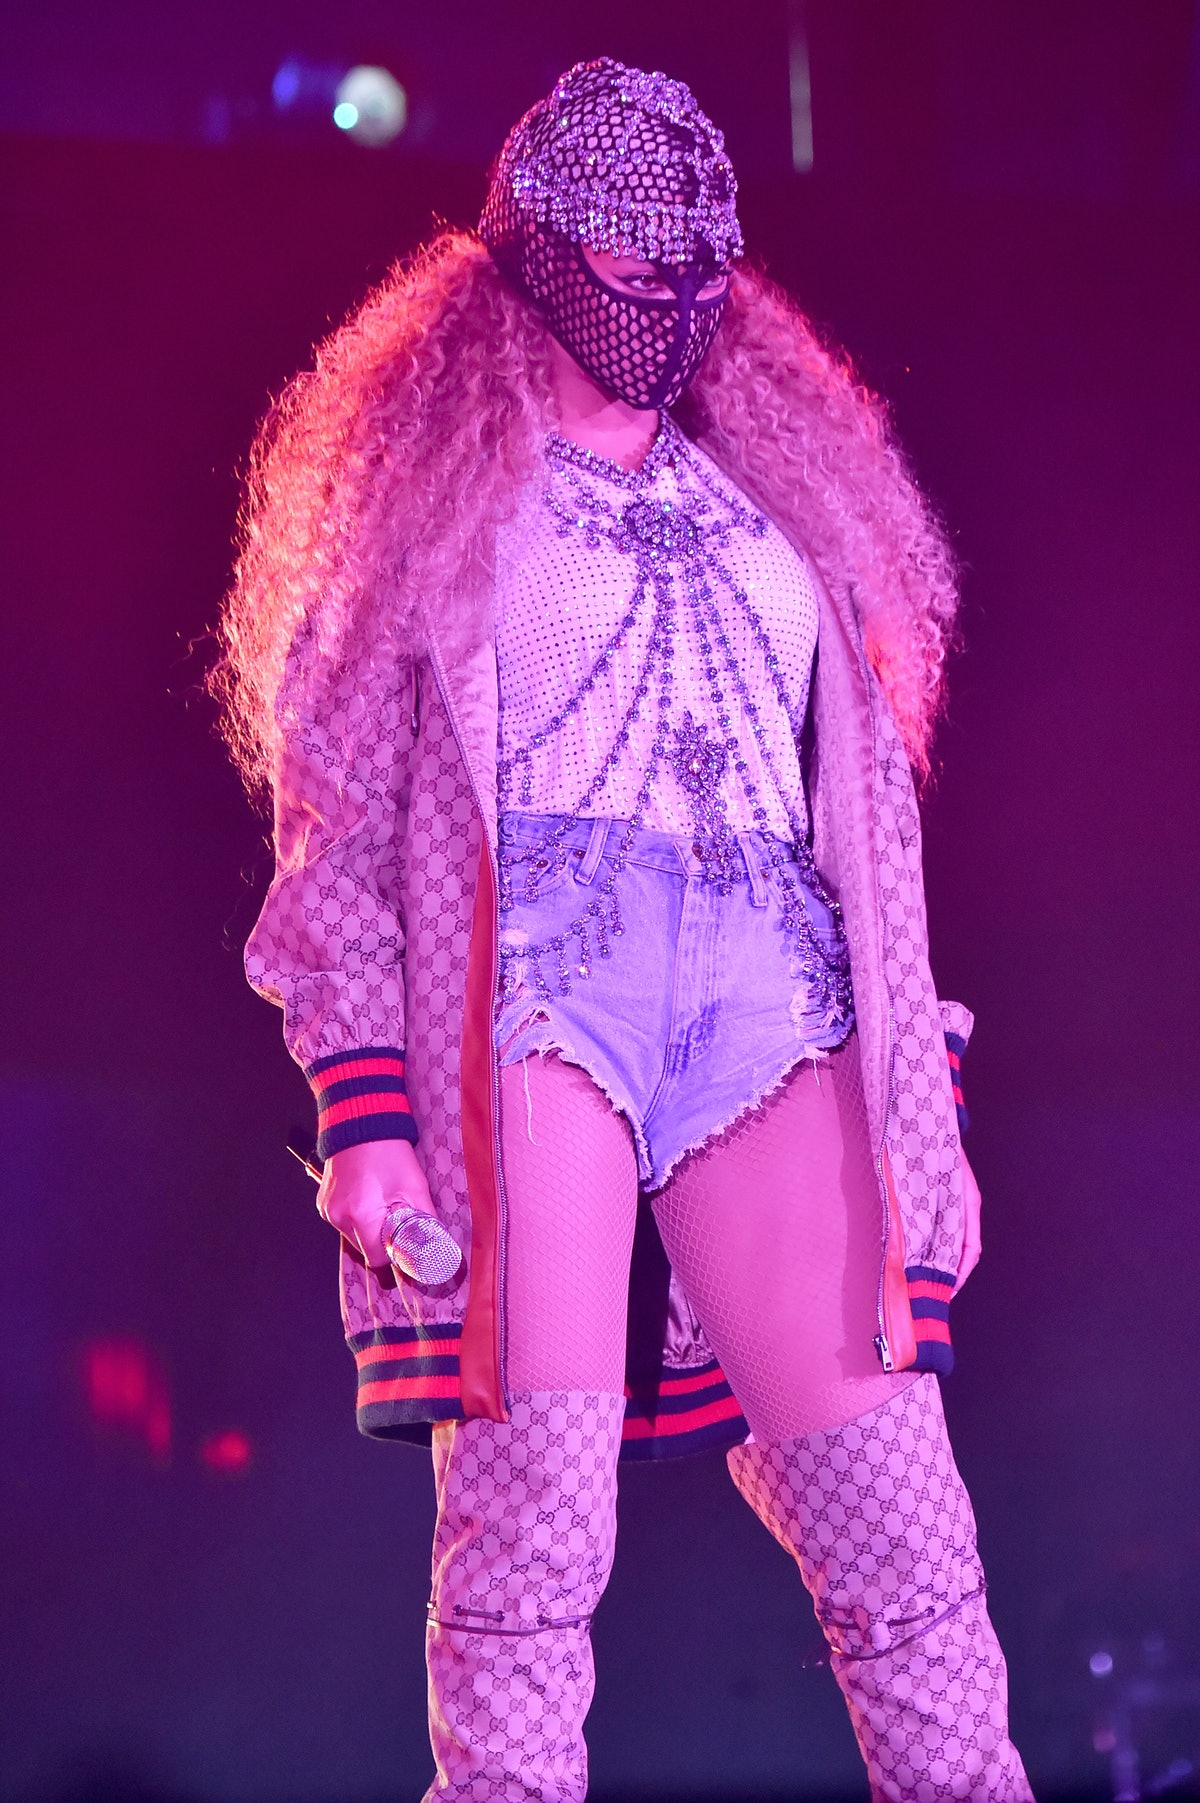 Beyonce Knowles performs in a mask, bejeweller corset, and Gucci jacket on June 6, 2018 in Cardiff, ...